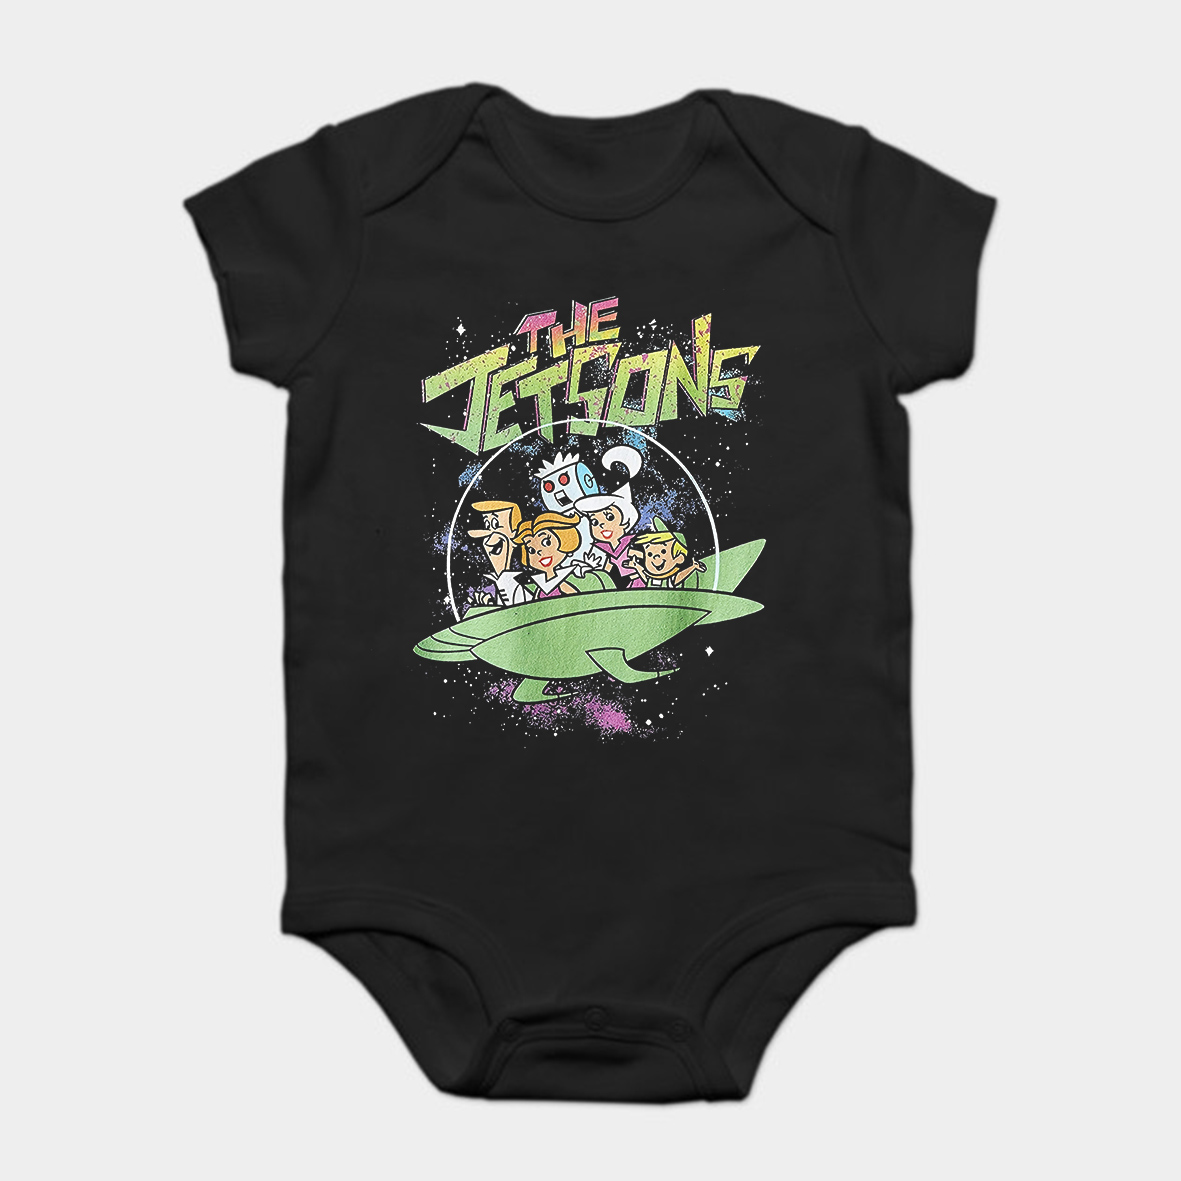 Romantic Baby Onesie Baby Bodysuits Kid T Shirt Cool Hanna Barbera The Jetsons Good Taste